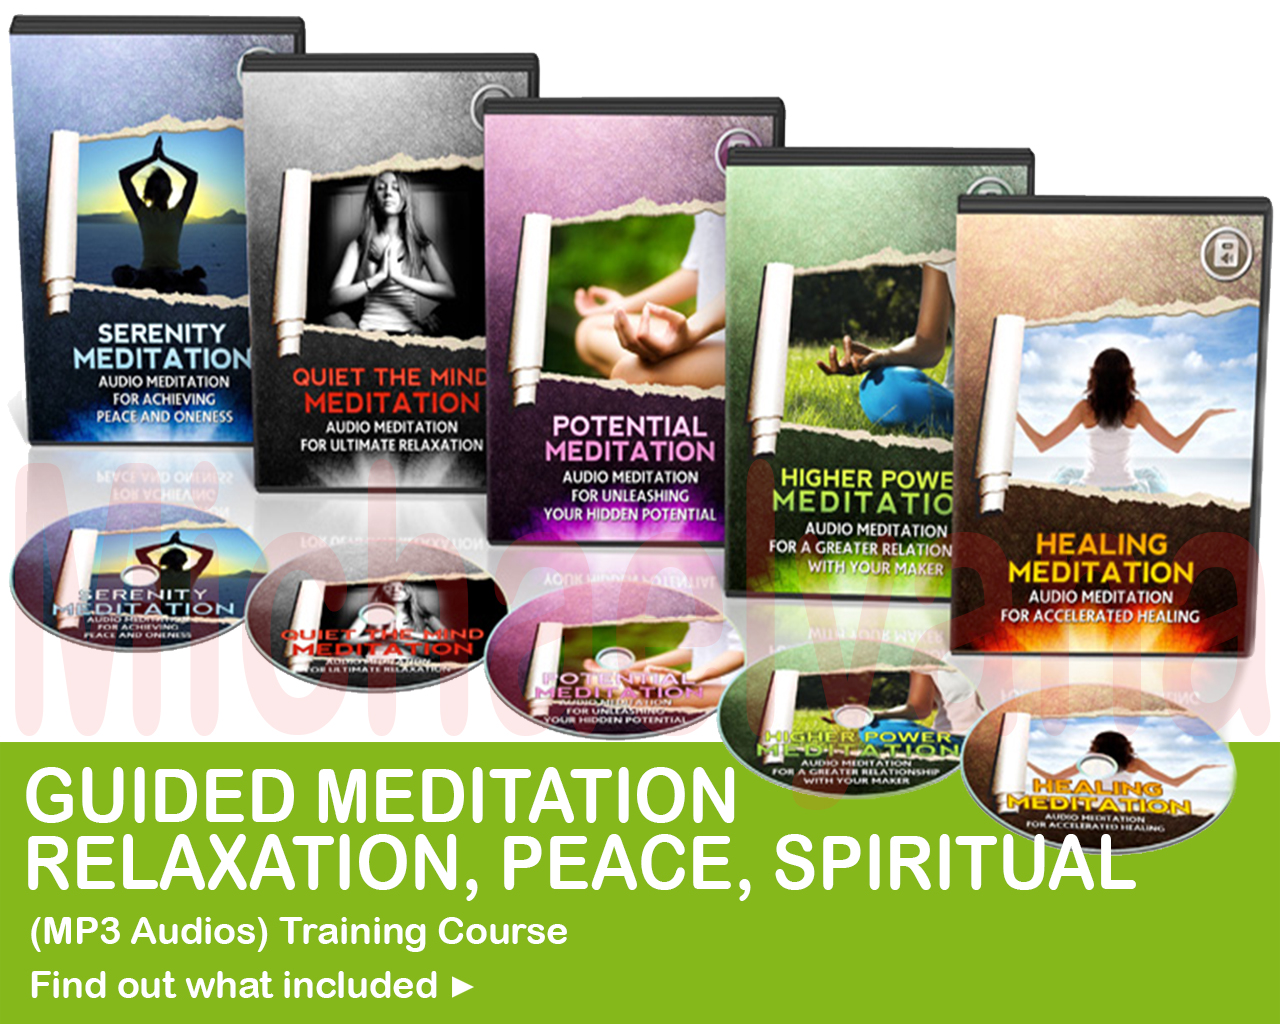 GUIDED MEDITATION - RELAXATION, PEACE, SPIRITUAL - (MP3 AUDIOS) TRAINING COURSE